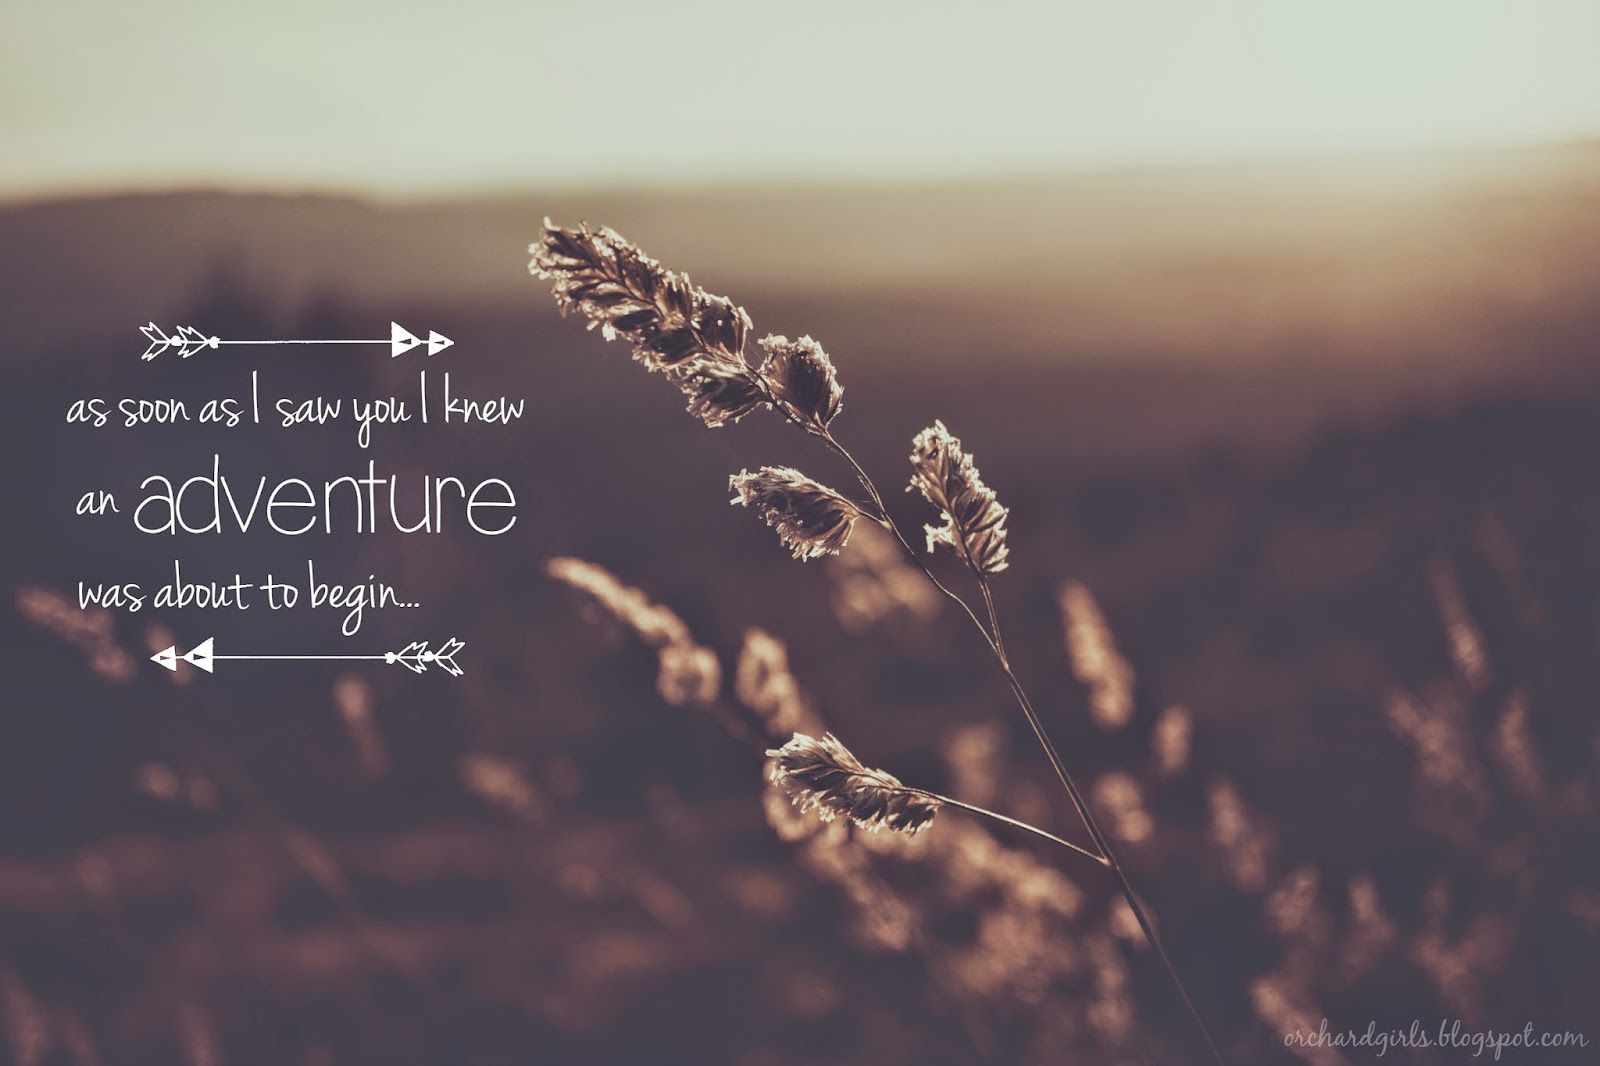 adventure picture quote by orchard adventure quote